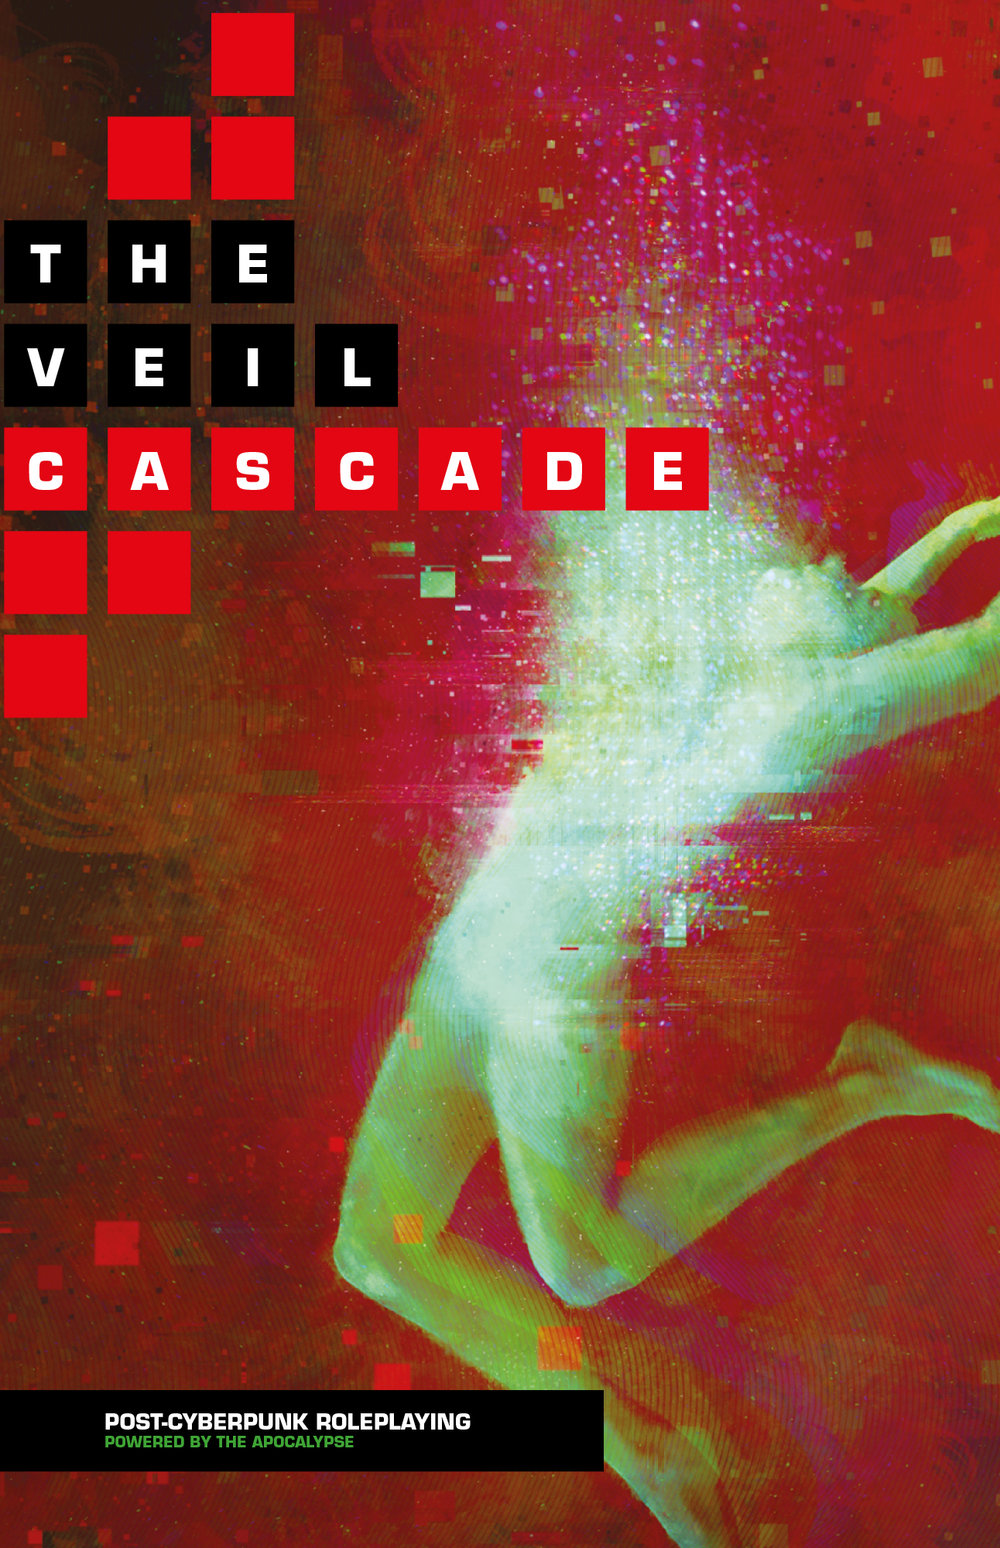 The_Veil Cascade cover.jpg